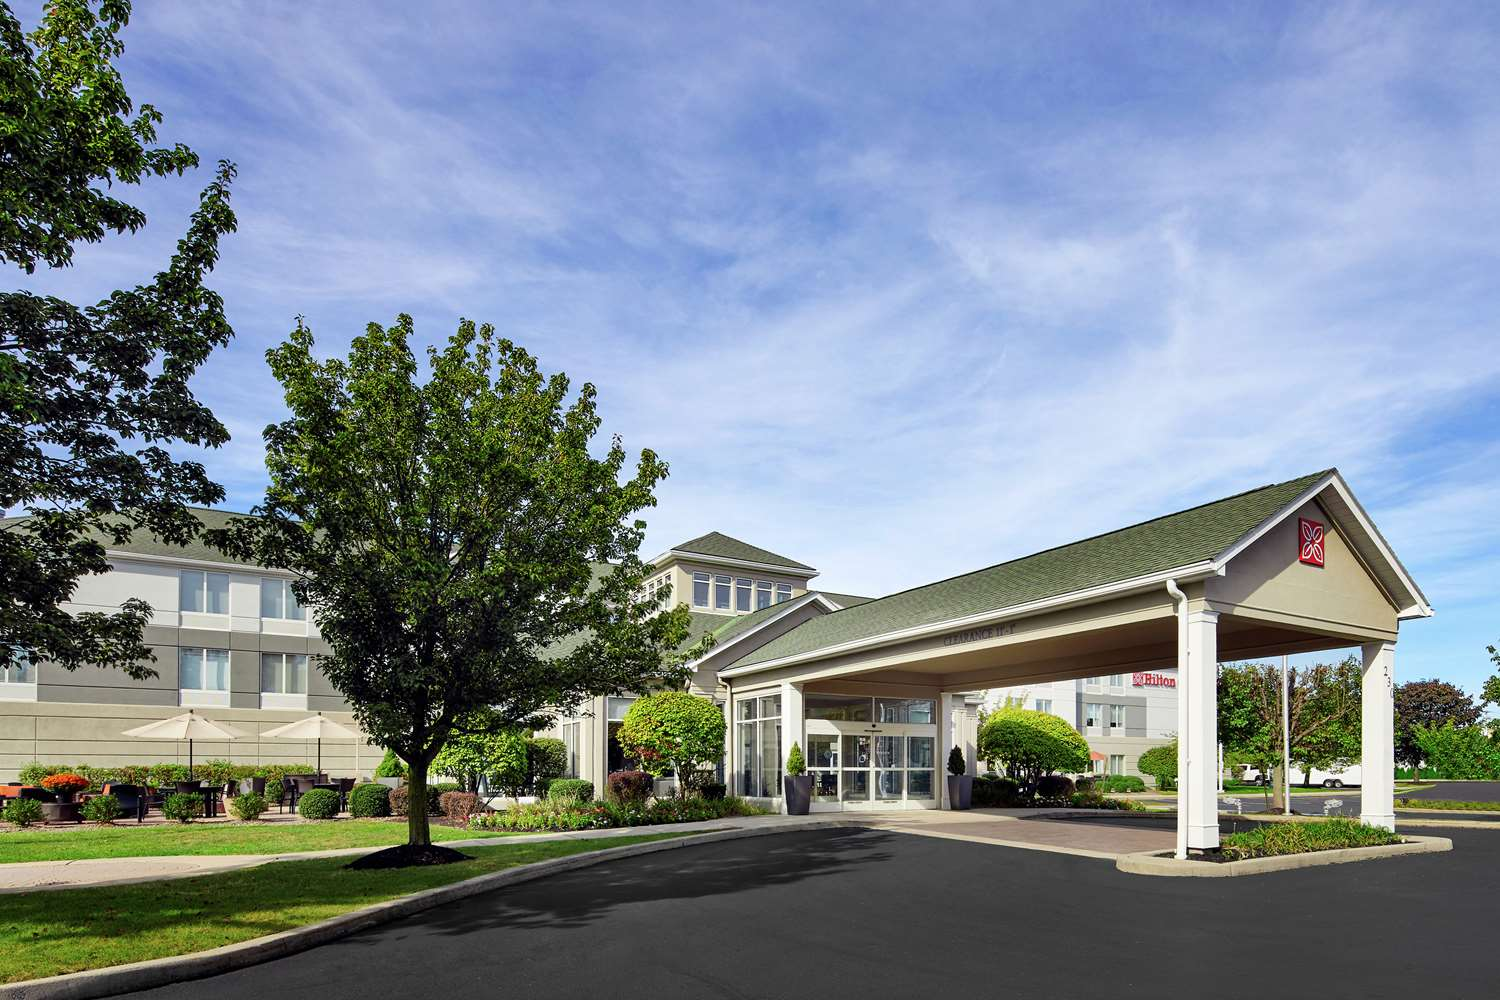 Hilton Garden Inn Breinigsville